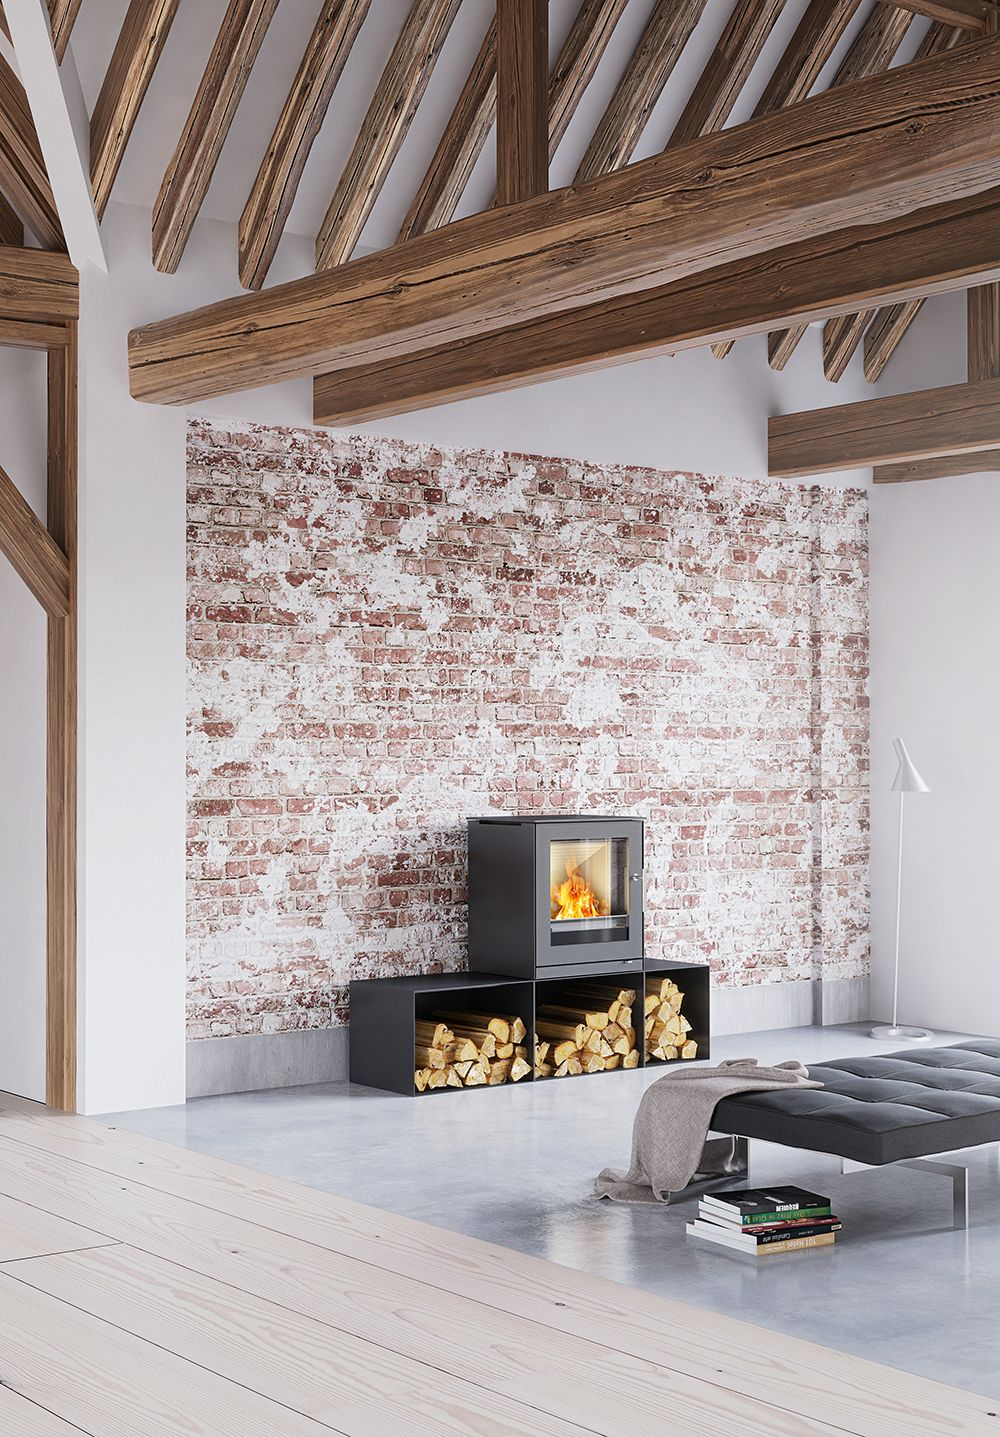 #RAIS Q-Tee 2 a #woodburning #stove with plenty of options for